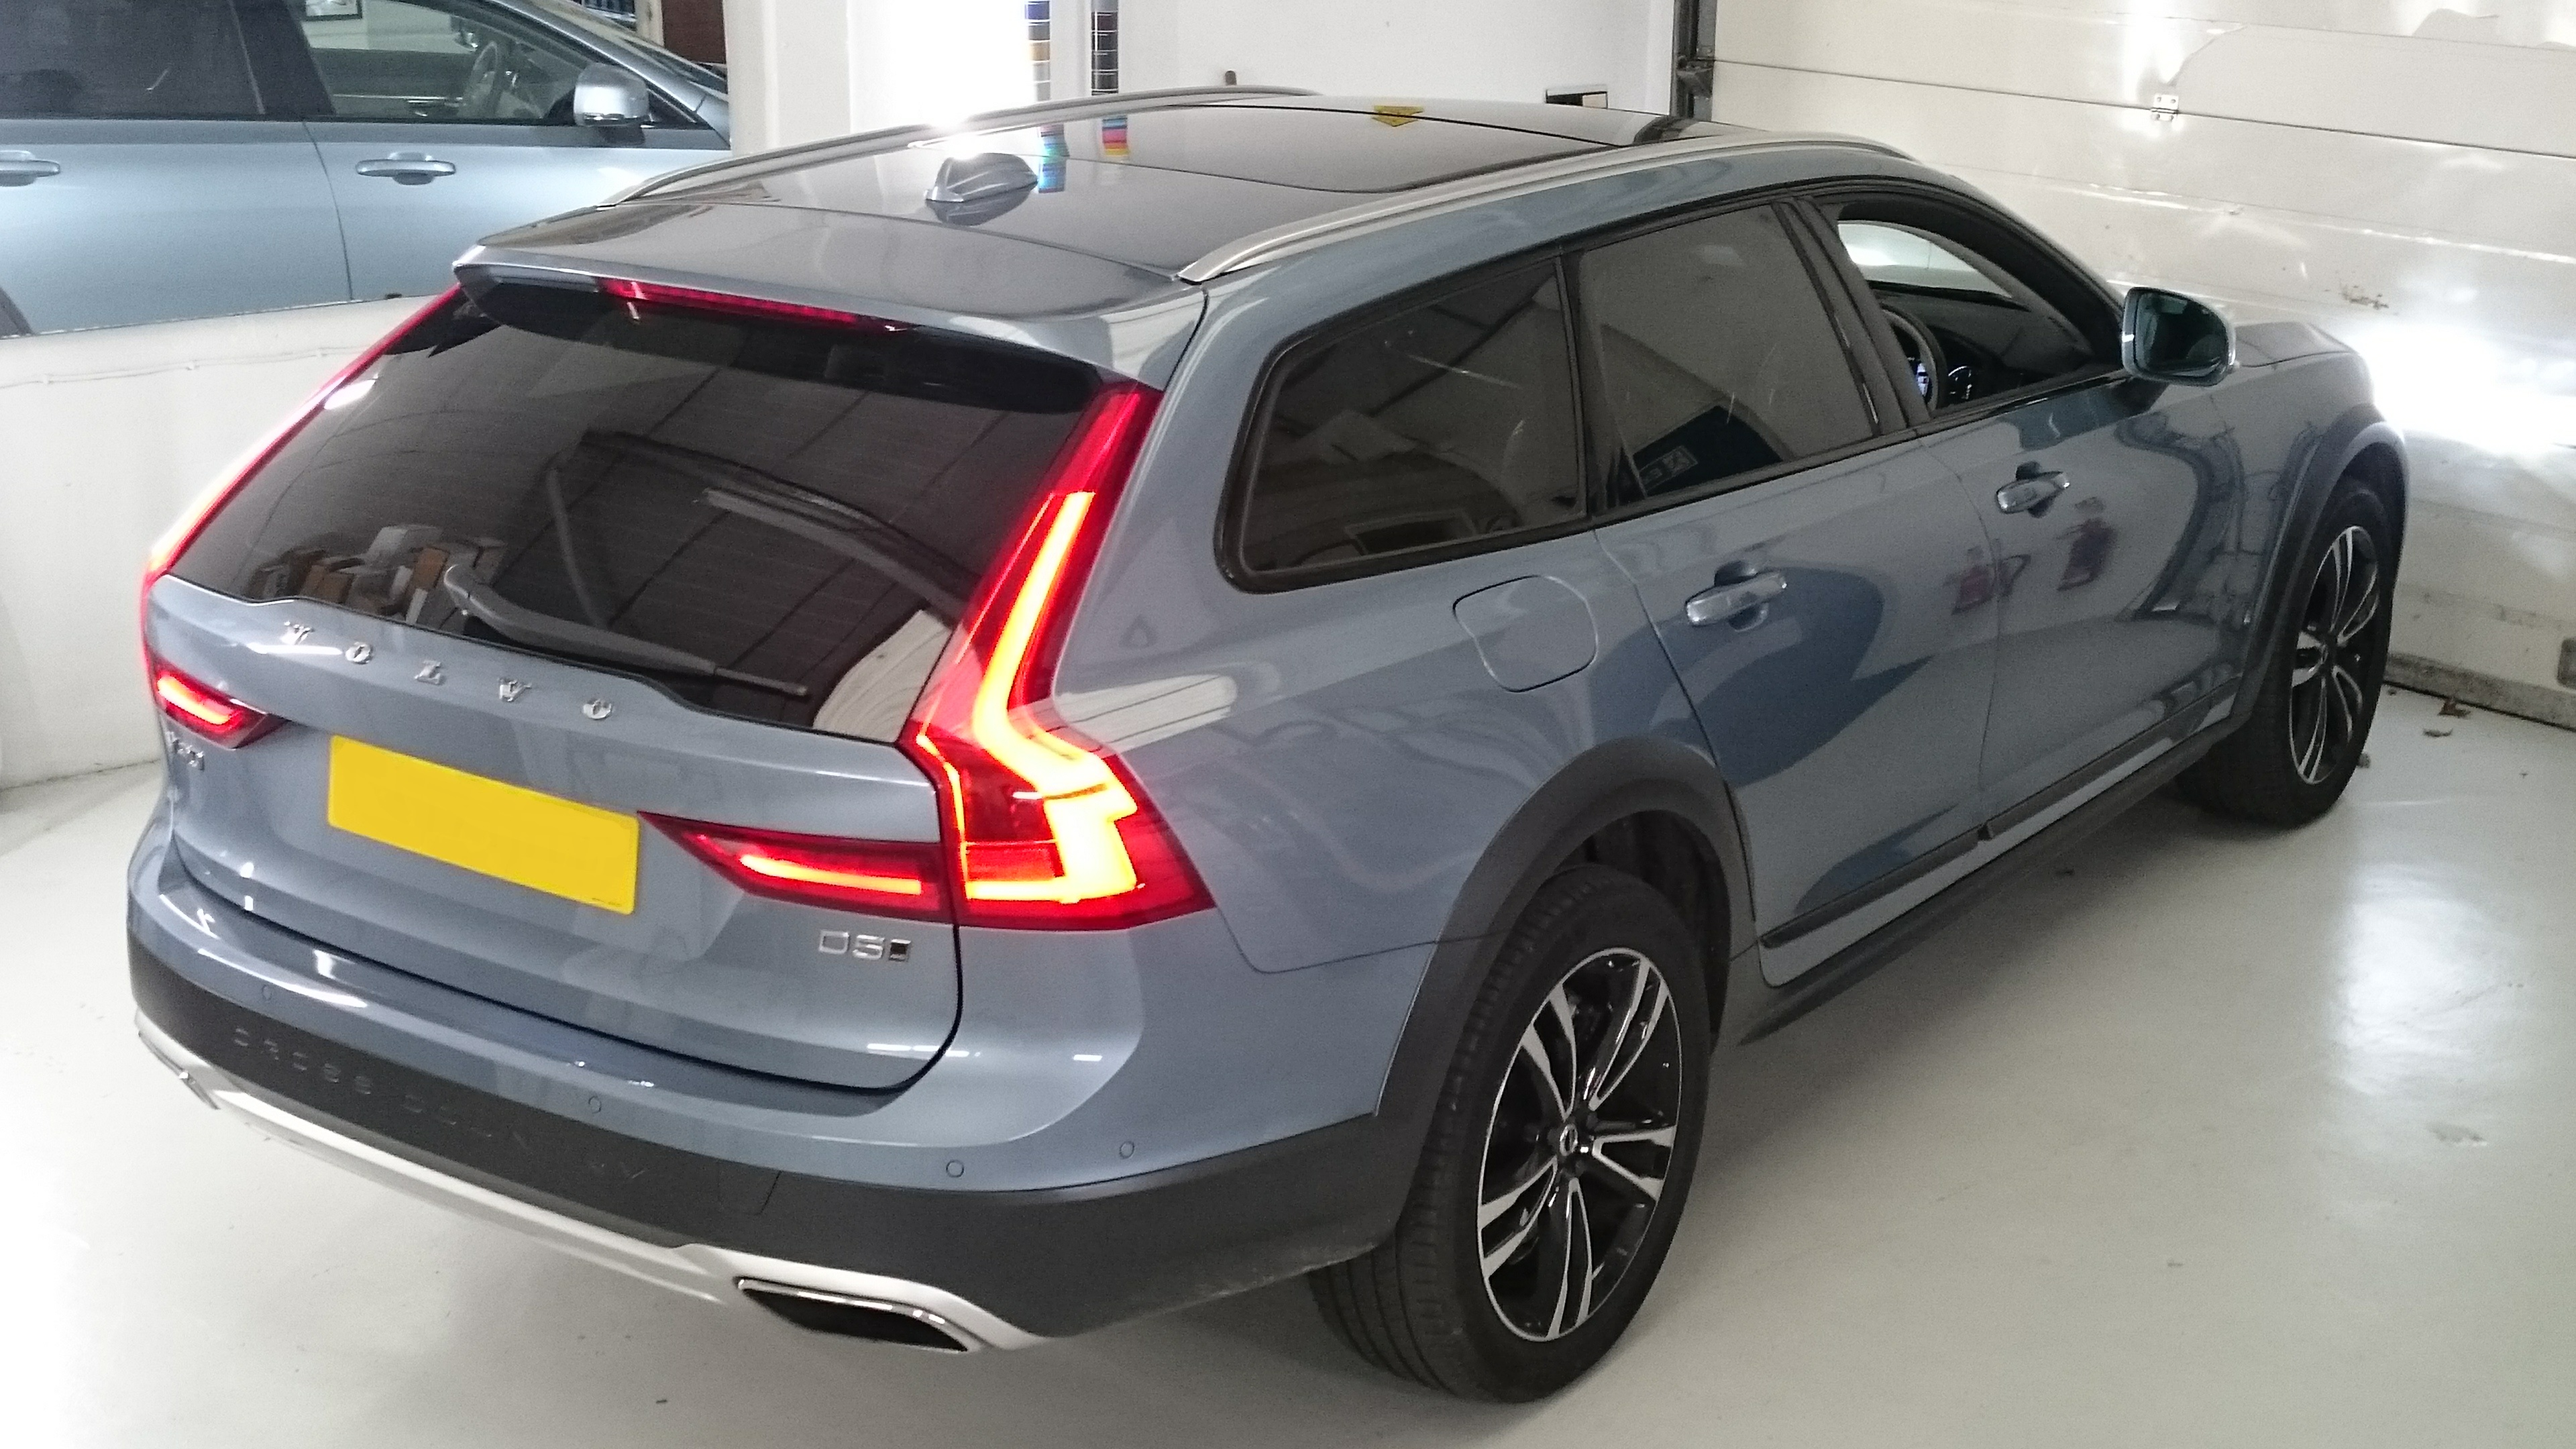 Volvo V90. Estate car window tinting offside rear quarter glass in Barnstaple North Devon. Llumar ATC20 automotive window films. Tinting Express Barnstaple